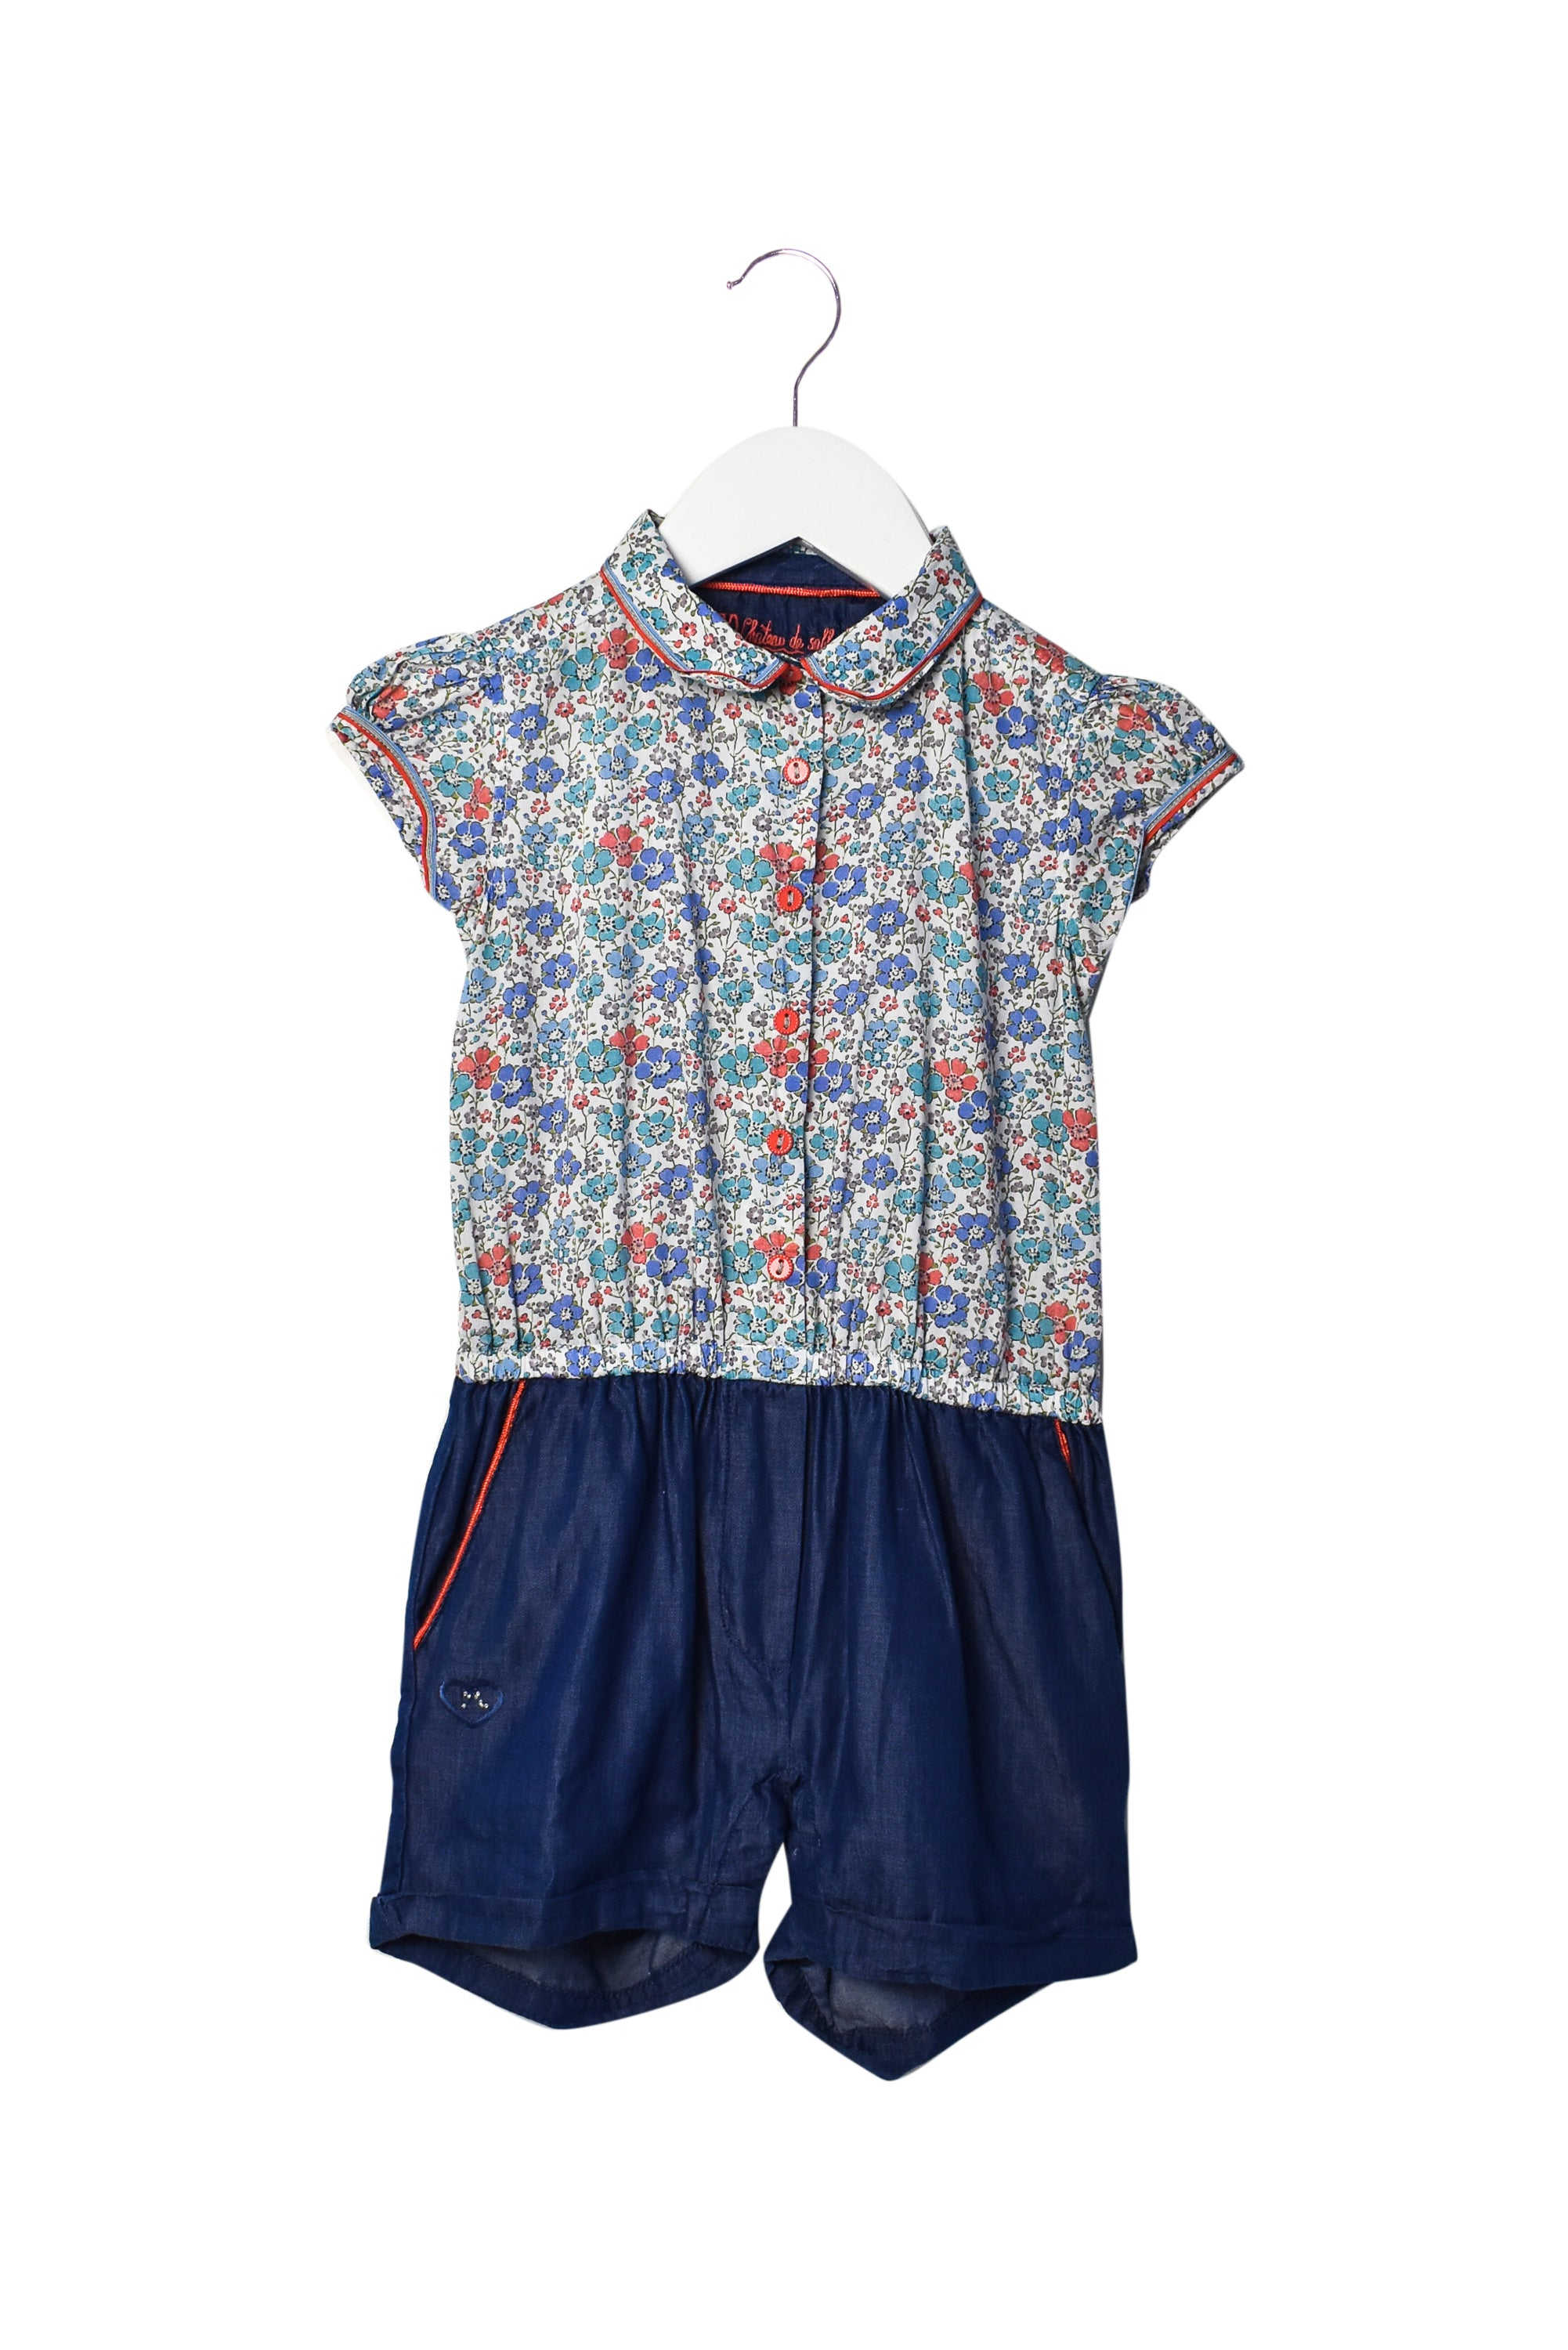 10006855 Chateau de Sable Kids~Romper 4T at Retykle